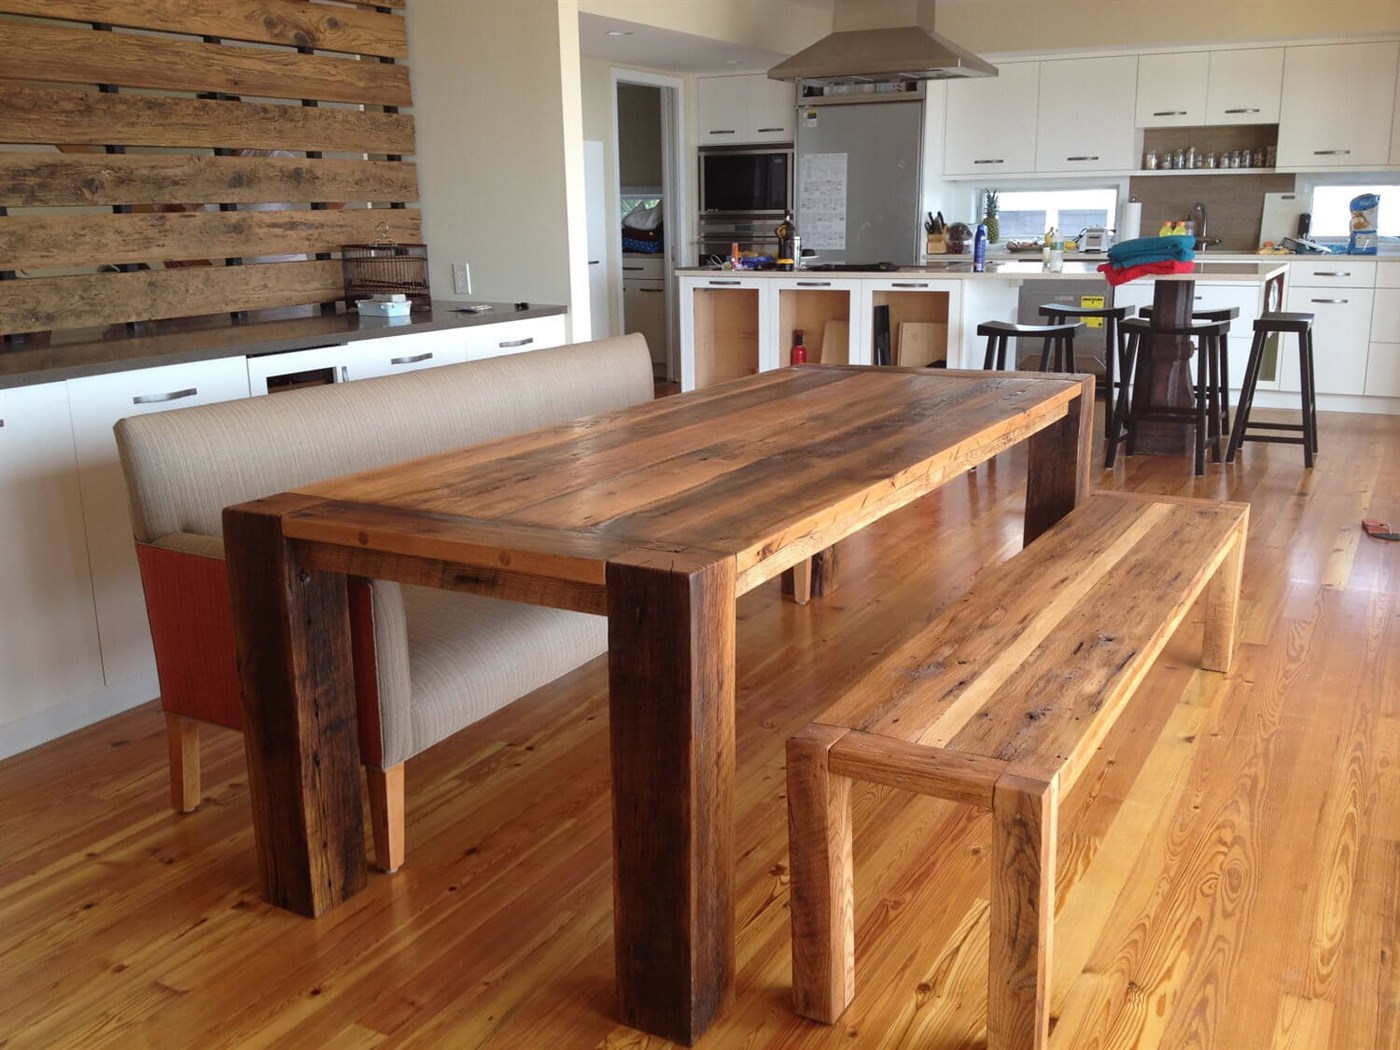 Wood table design ideas